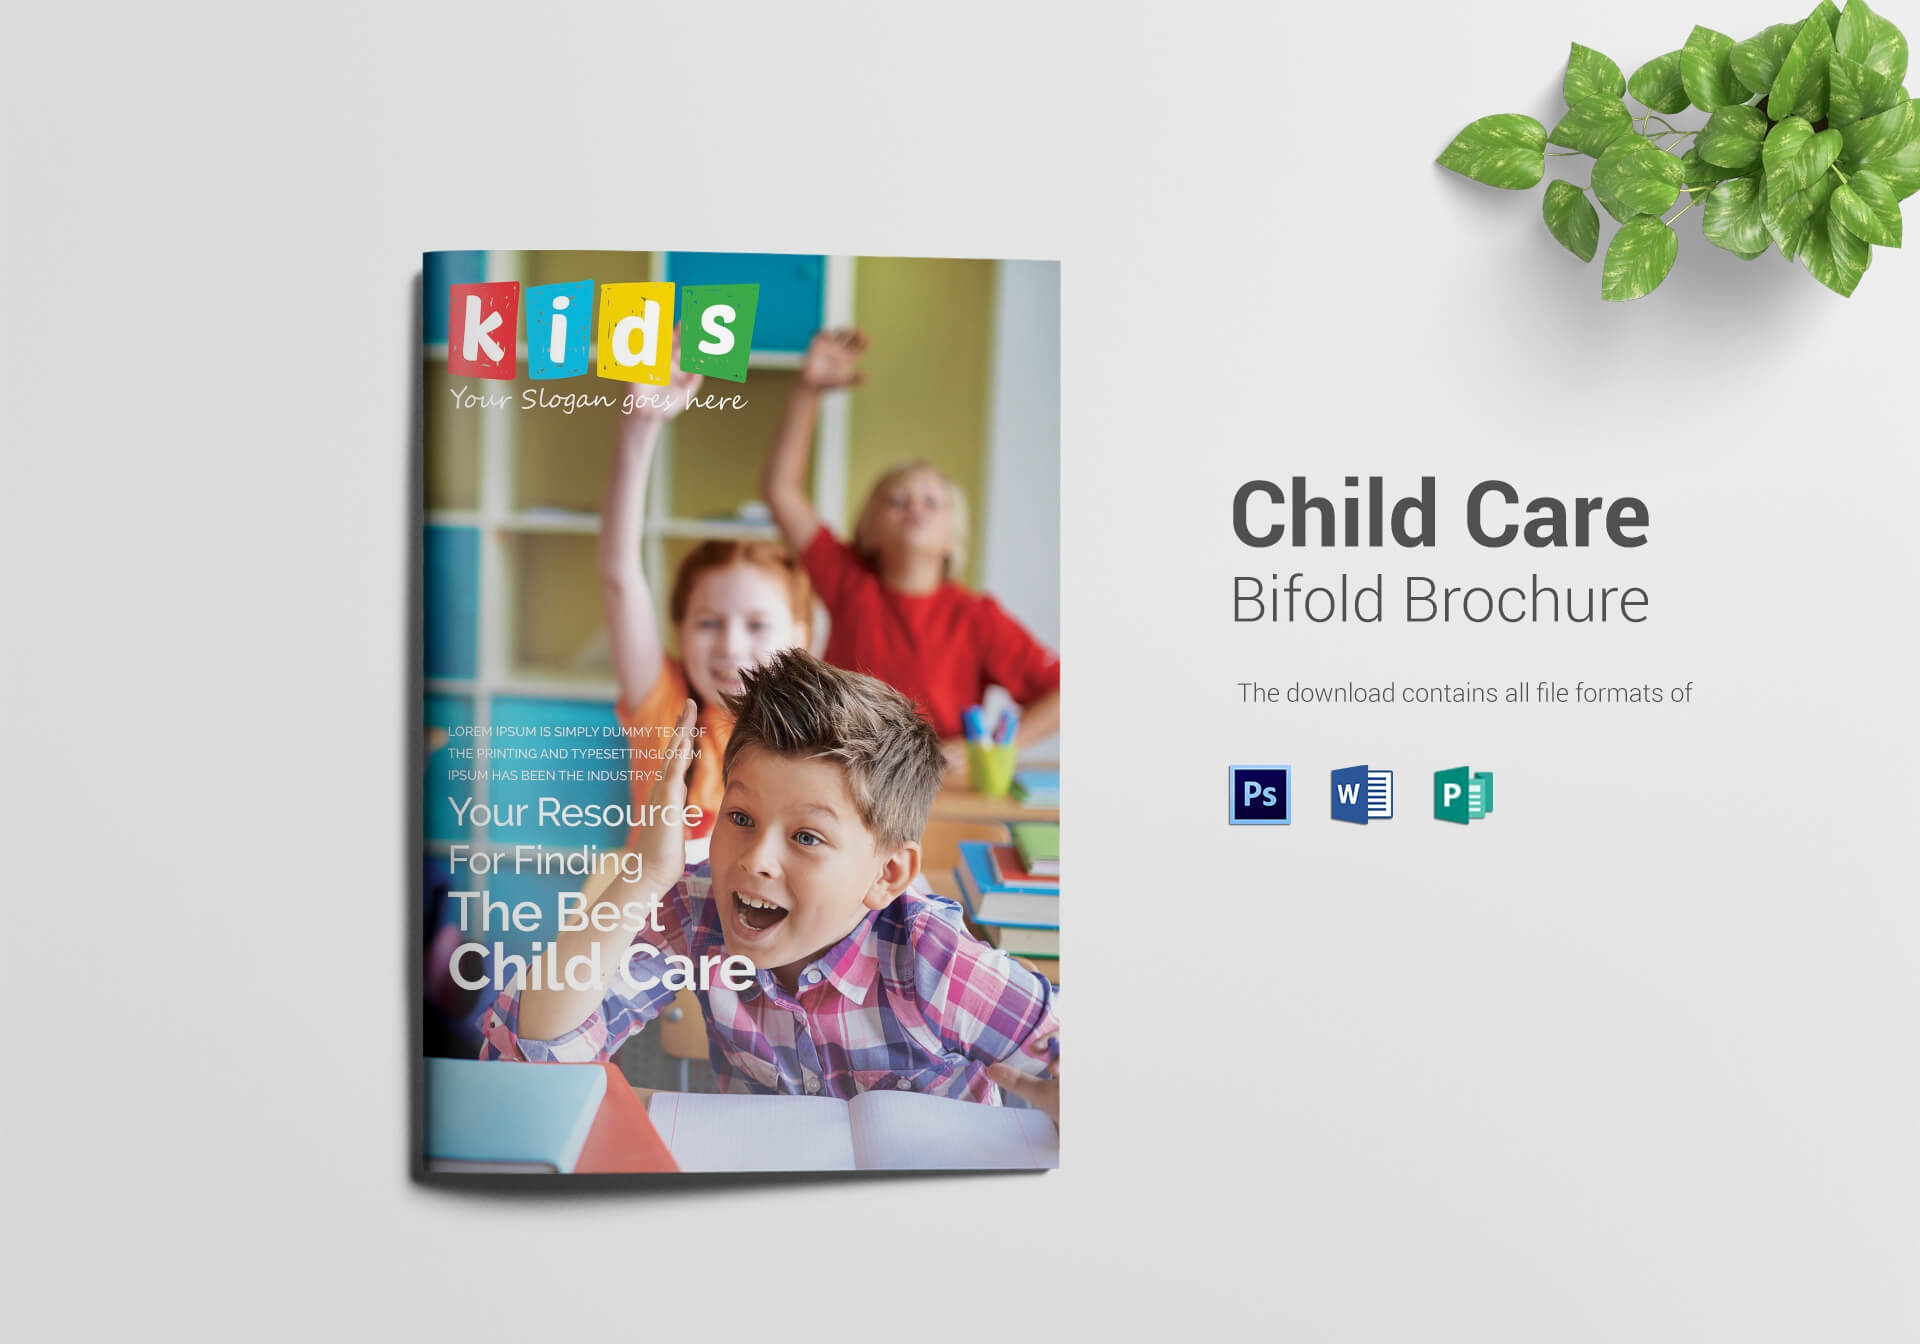 14+ Child Care Brochure Designs & Templates | Free & Premium inside Daycare Brochure Template